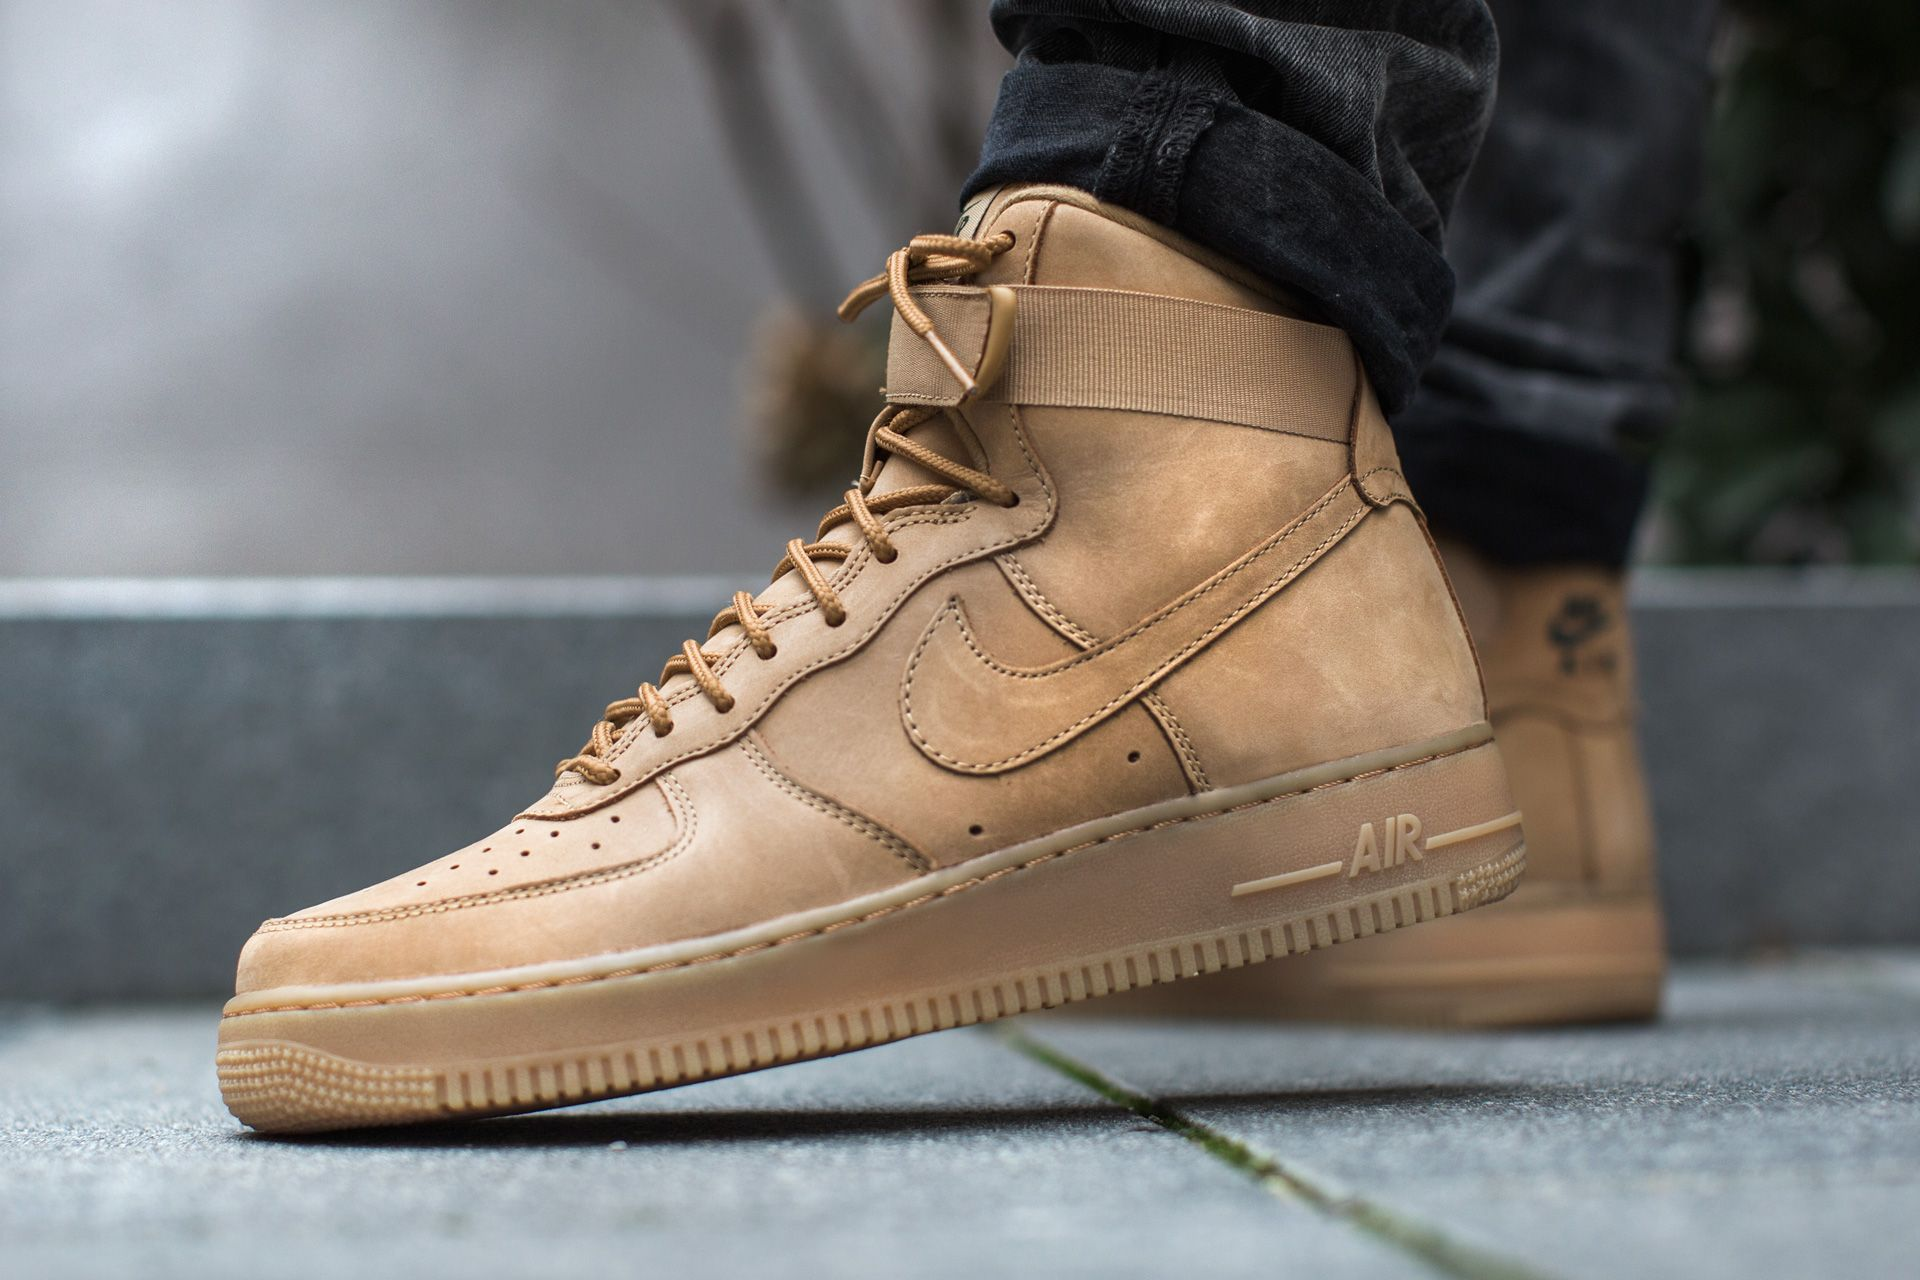 new products f2391 5f796 Nike Air Force 1 High Flax Release Infos,  AirForce1High  Flax  nike   sneaker,  agpos,  sneaker,  sneakers,  sneakerhead,  solecollector,   sneakerfreaker, ...